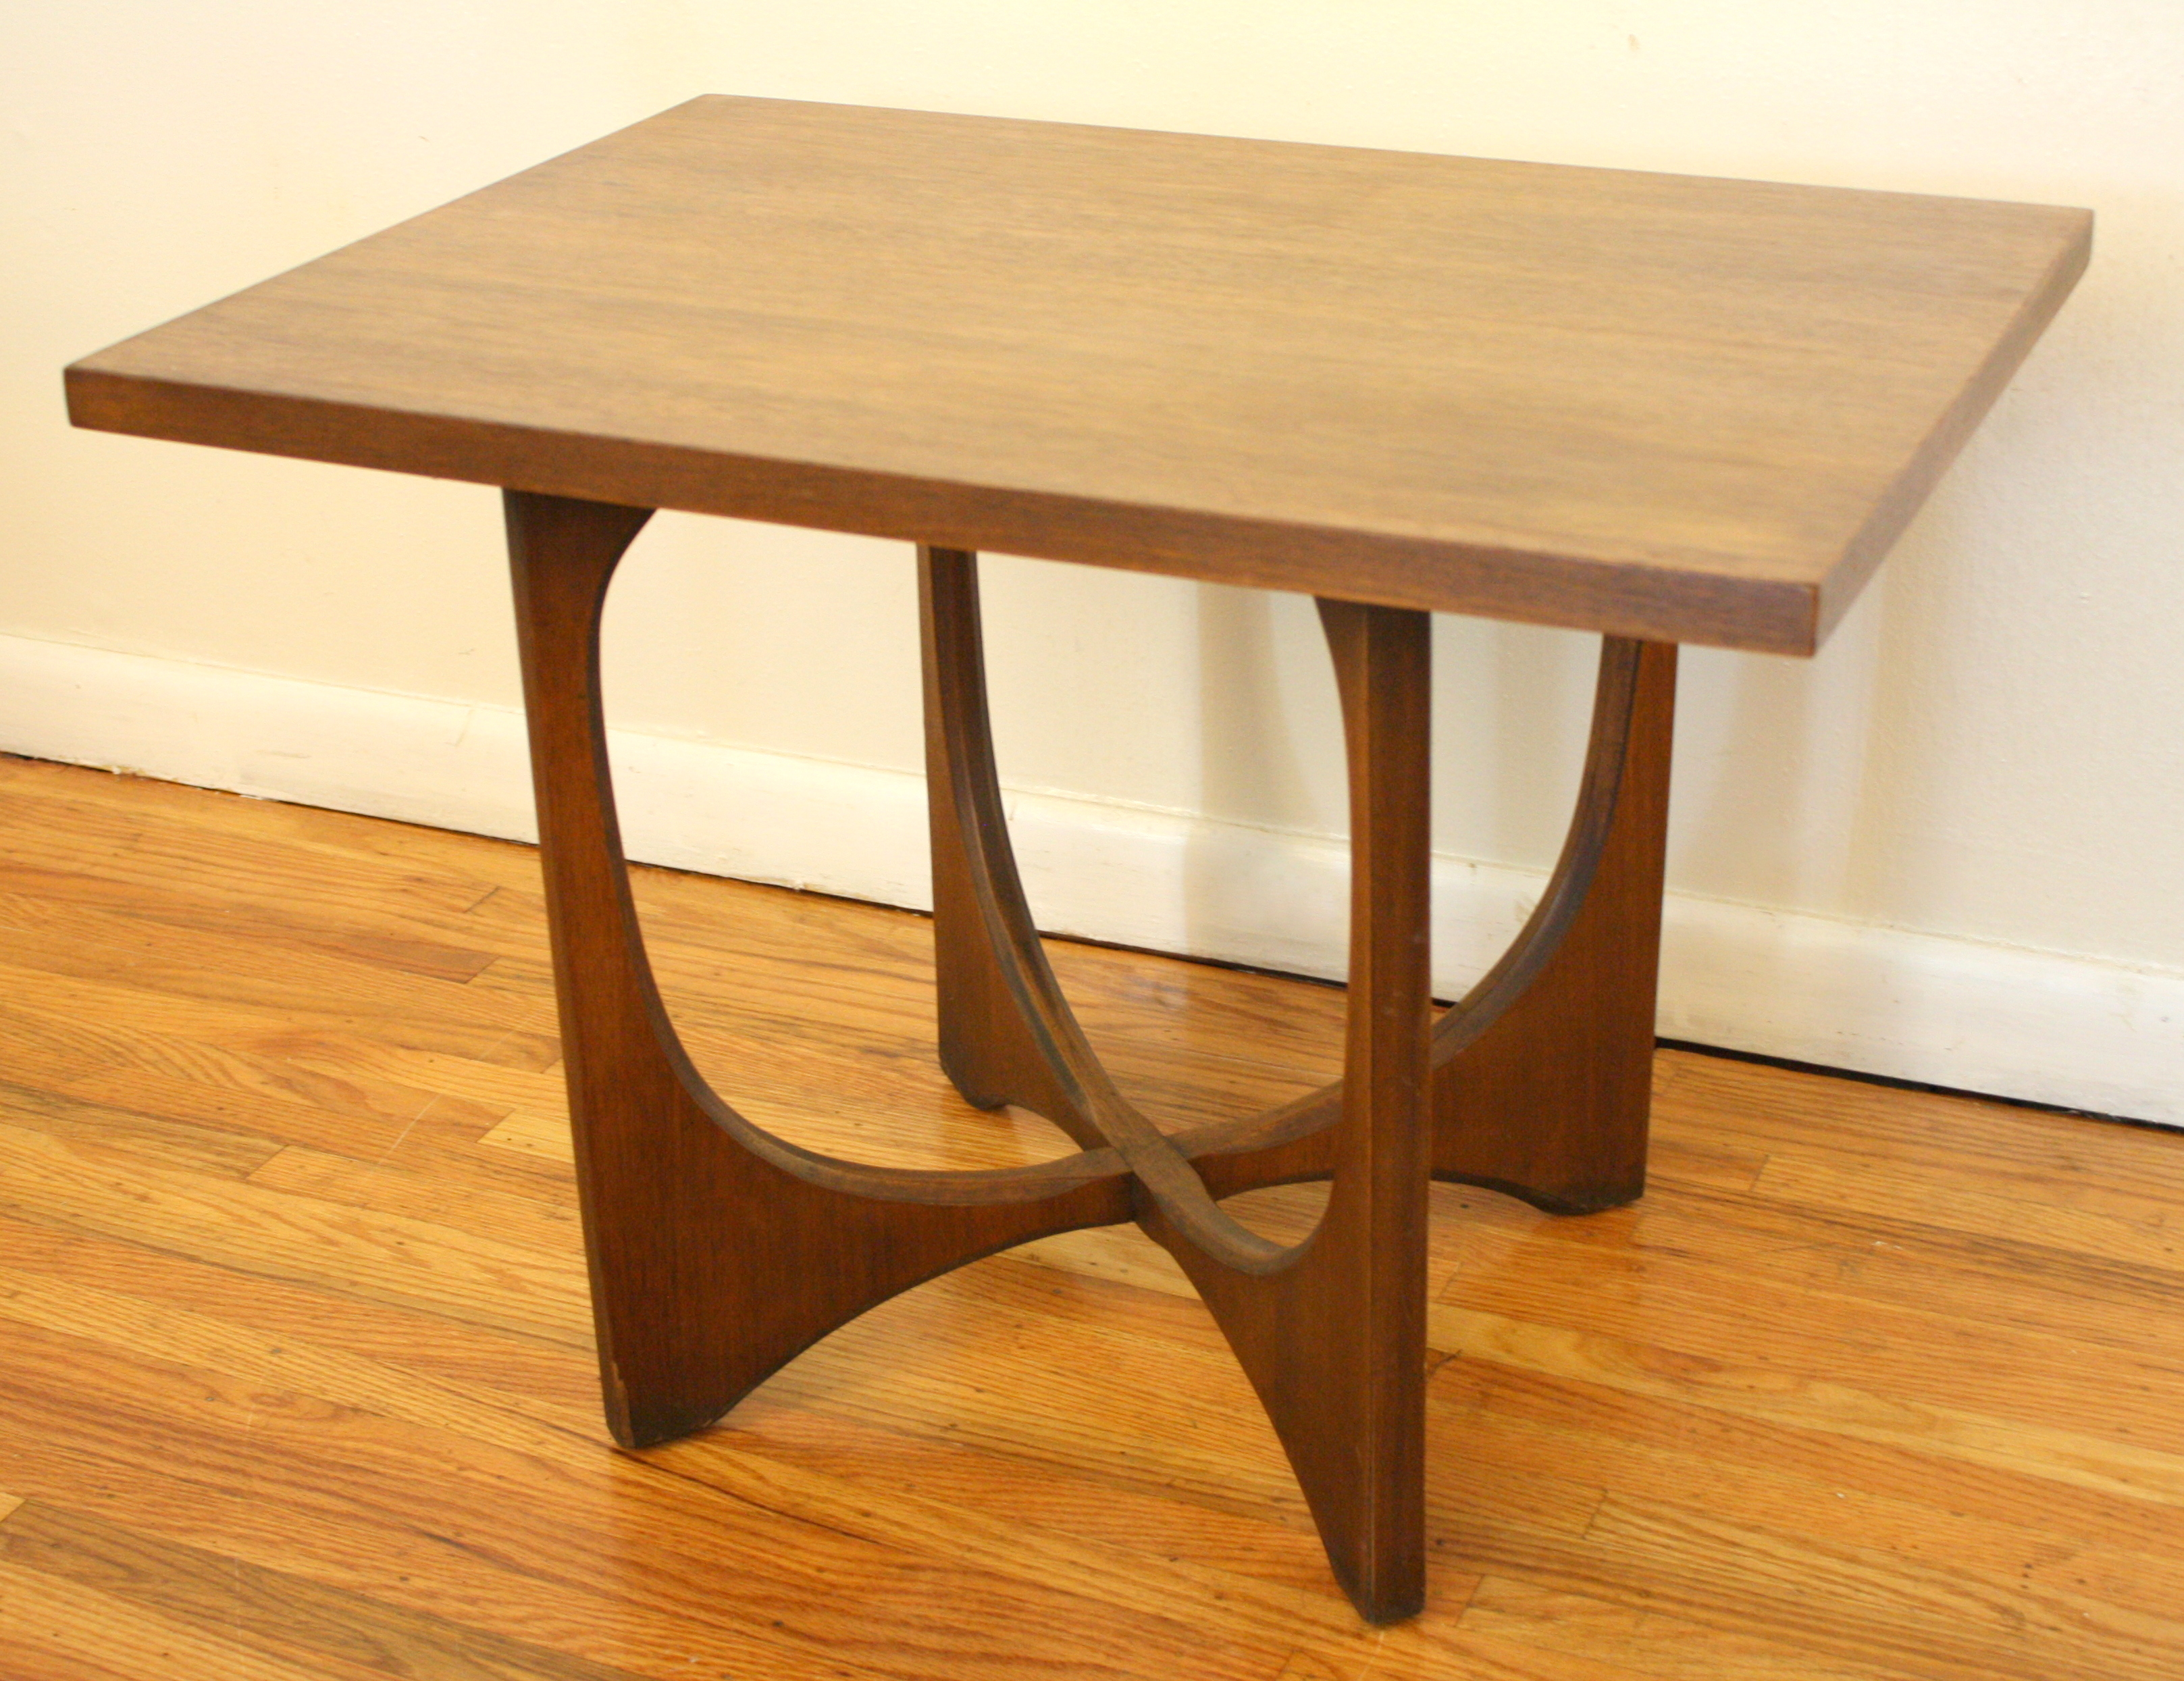 J B Van Sciver Mid Century Modern Coffee Table and Side Table